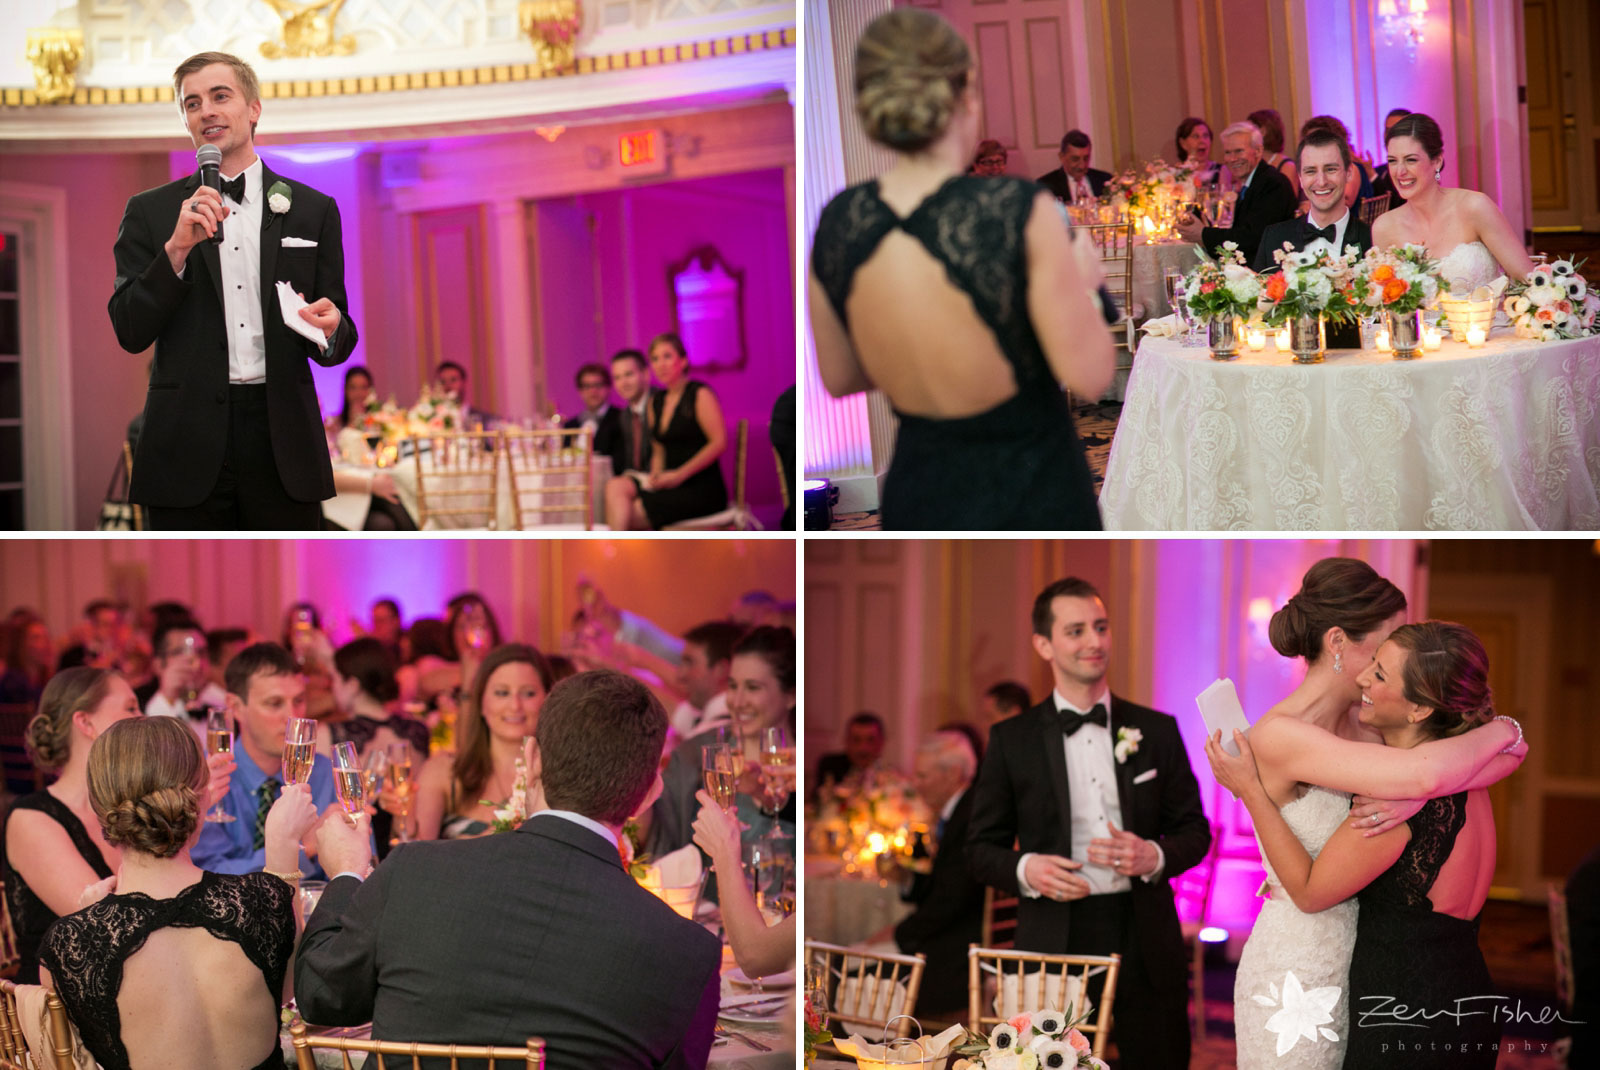 Best man and maid of honor make their toasts, bride and groom laugh and embrace maid of honor.